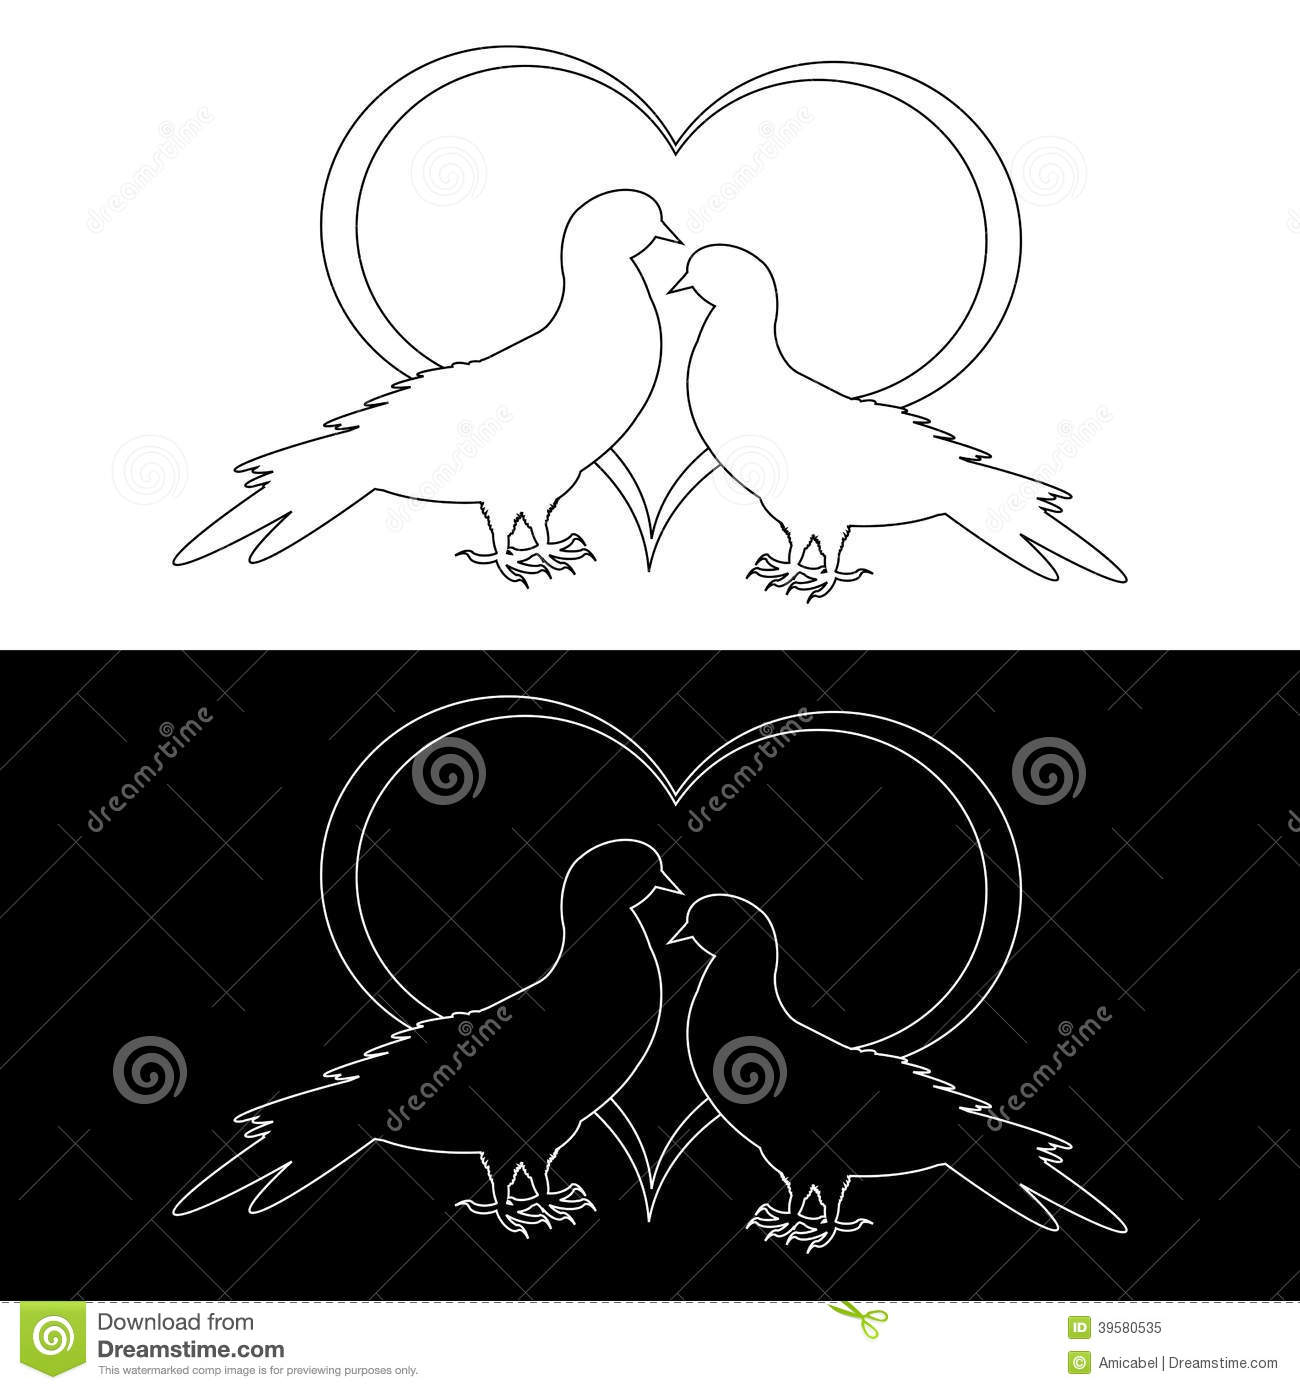 Download Monochrome Contour Silhouette Of Two Doves Stock Vector - Illustration of contour, lovely: 39580535